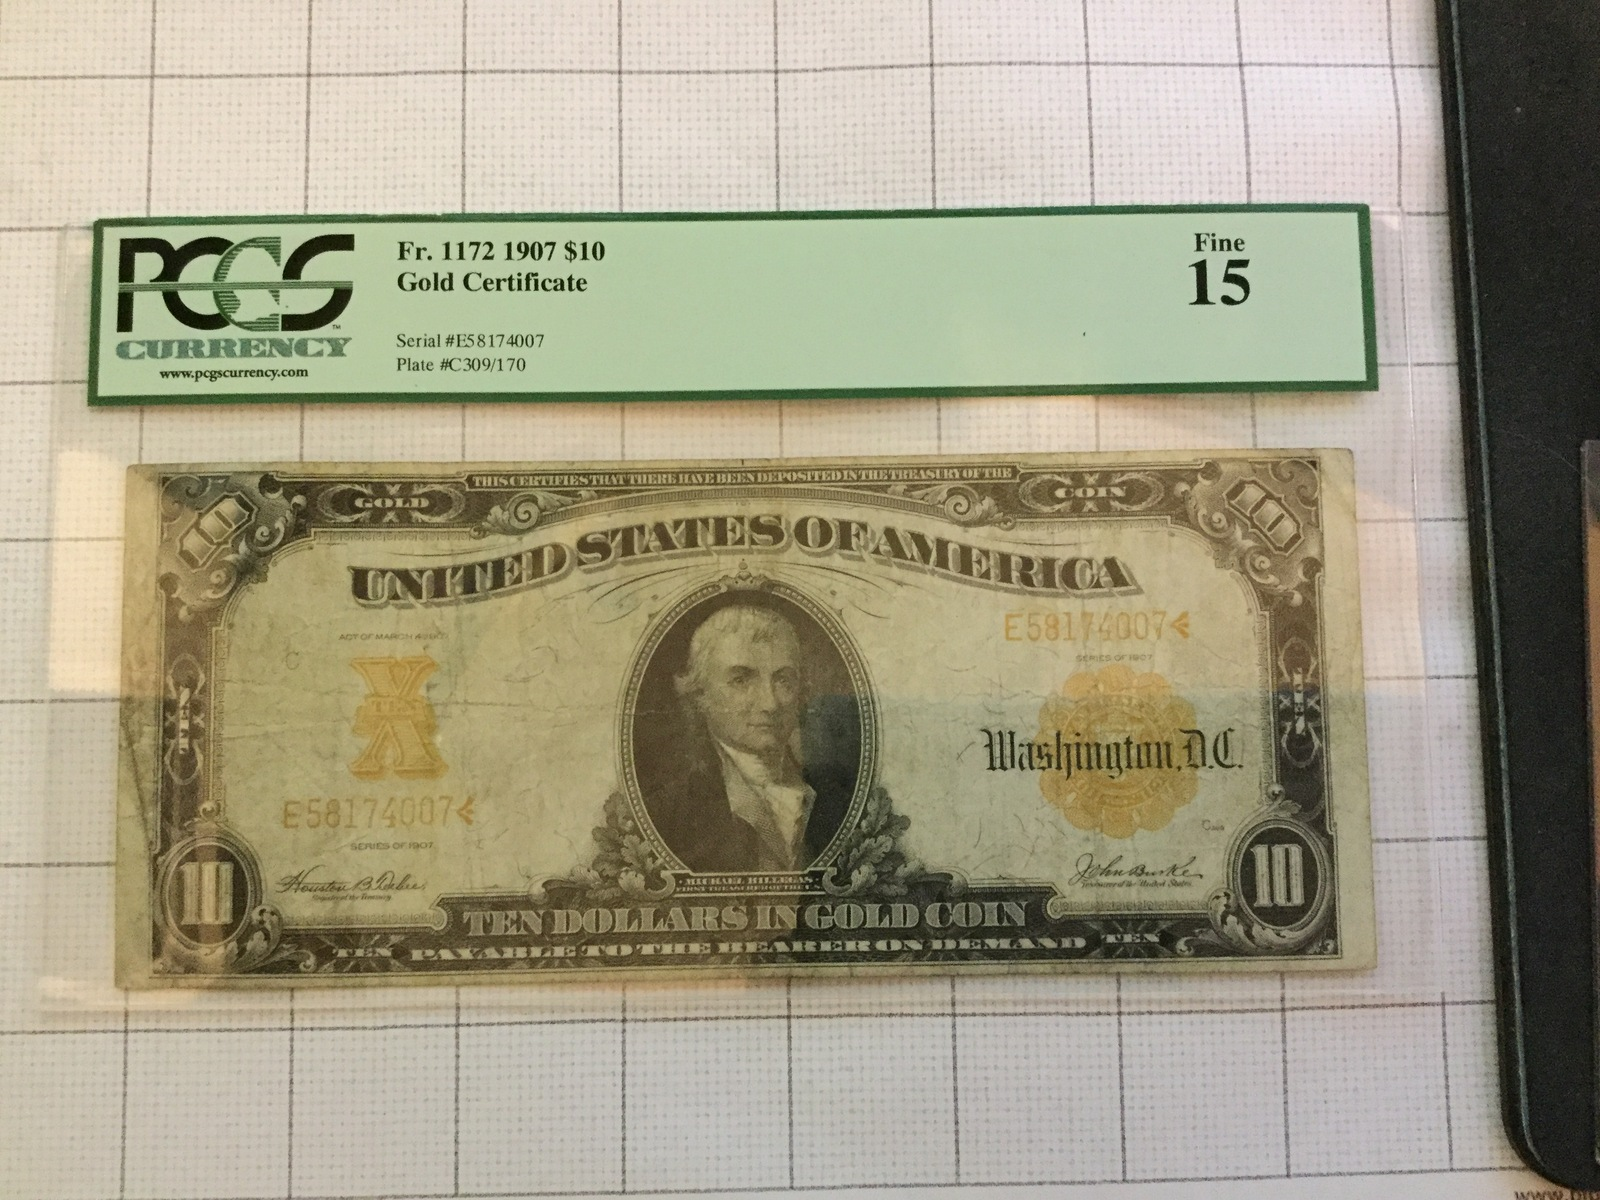 Primary image for 1907 US $10 Dollar Gold Certificate Bank Note PCGS Fine15